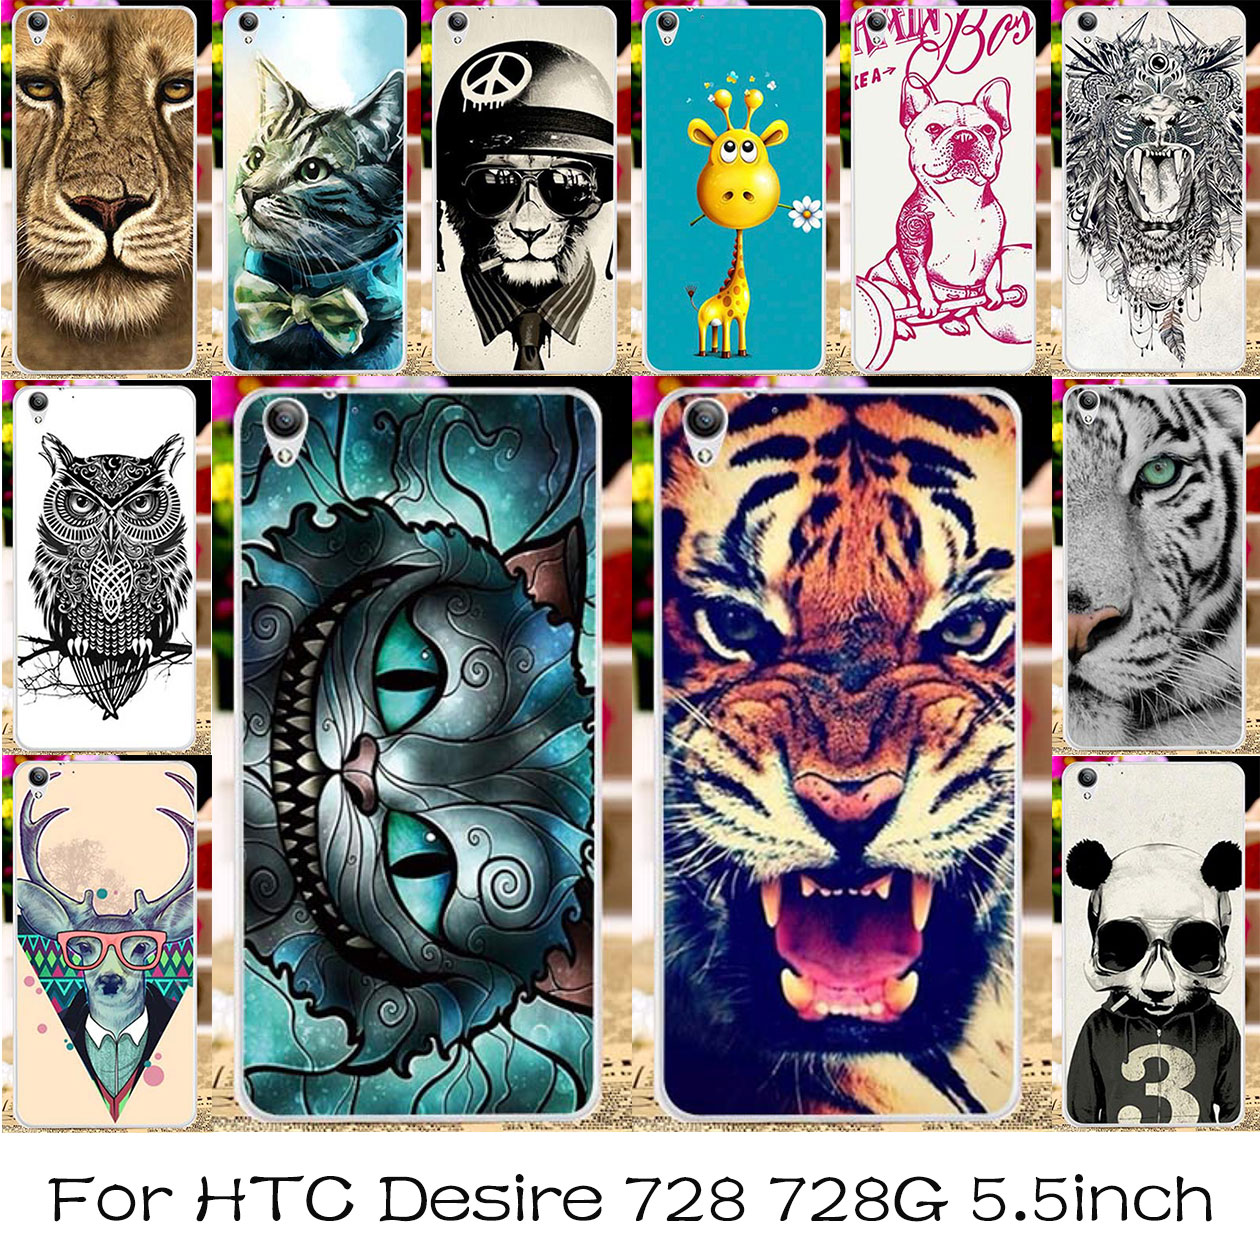 TAOYUNXI Silicone Plastic Phone Case For HTC Desire 728 728G Dual Sim D728T D728W Cover For HTC Desire 728 Cat Tiger Animal Bag